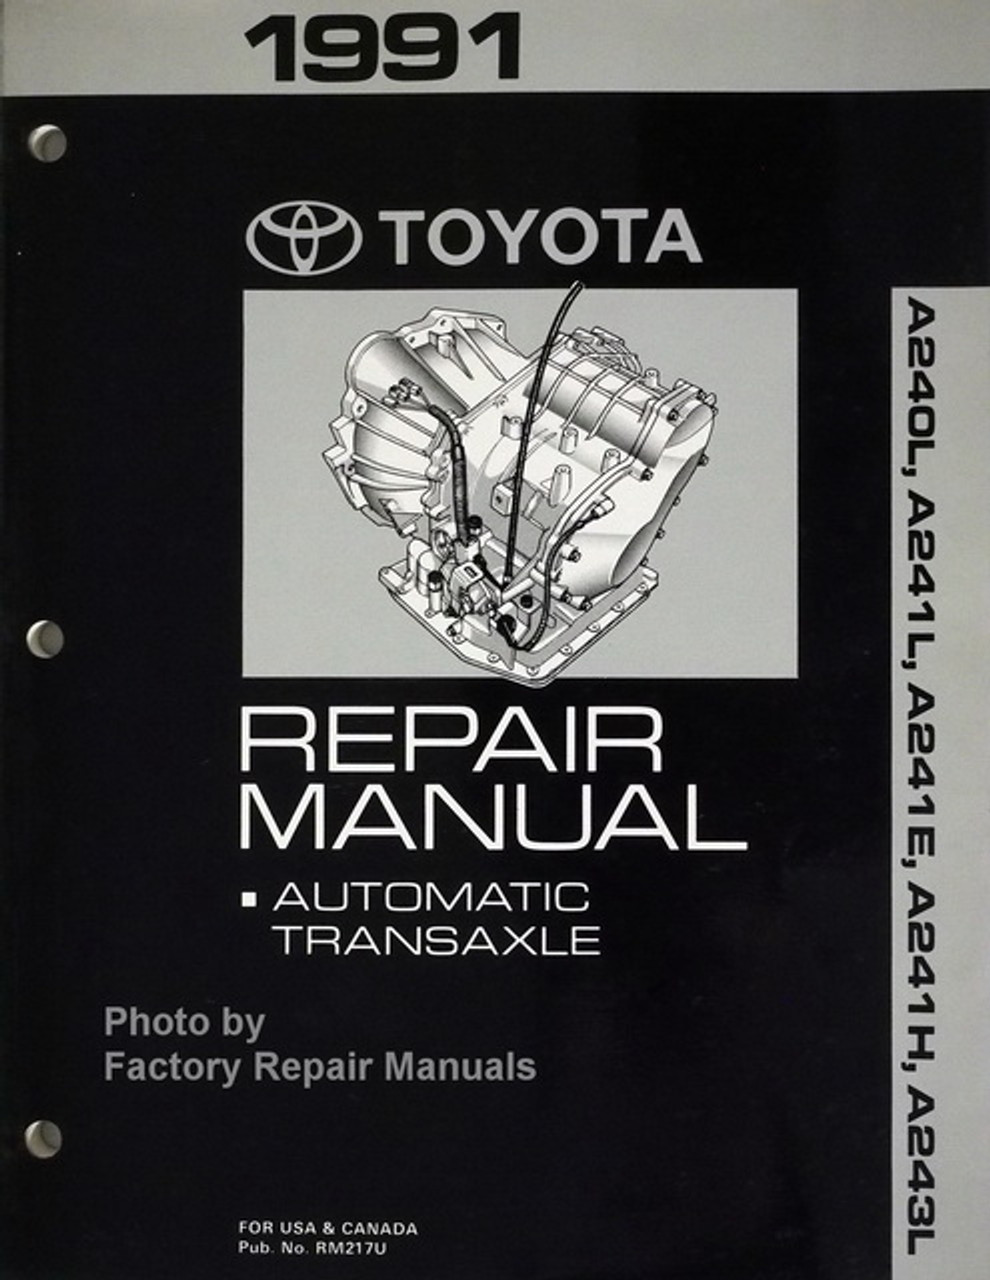 Rx379 1991 Toyota Celica Electrical Wiring Diagram Service Manual Other Car Manuals Vehicle Parts Accessories